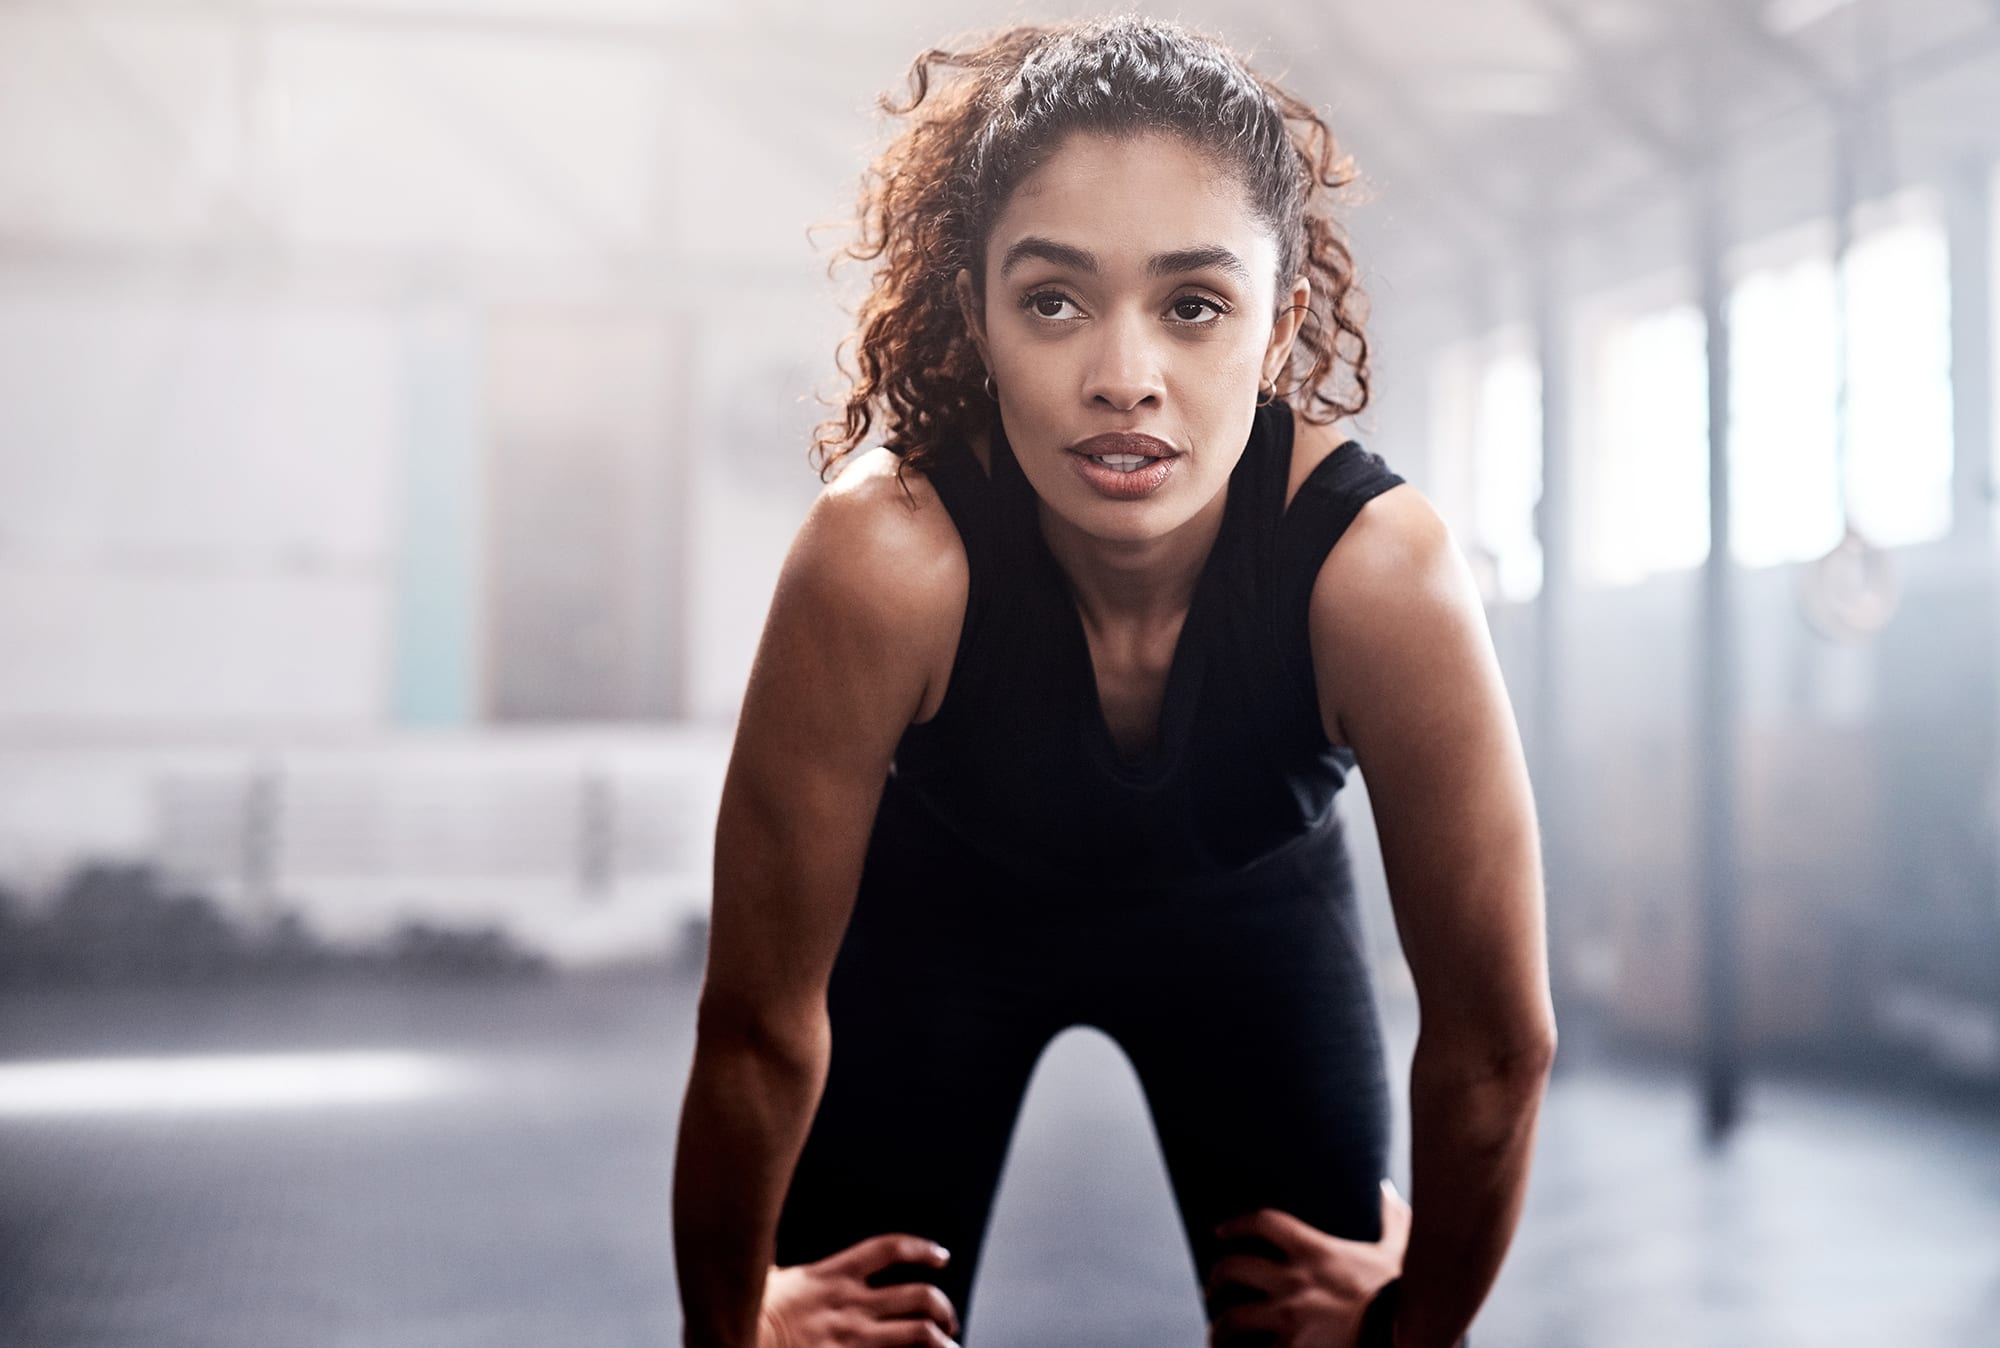 woman resting after intense workout in gym